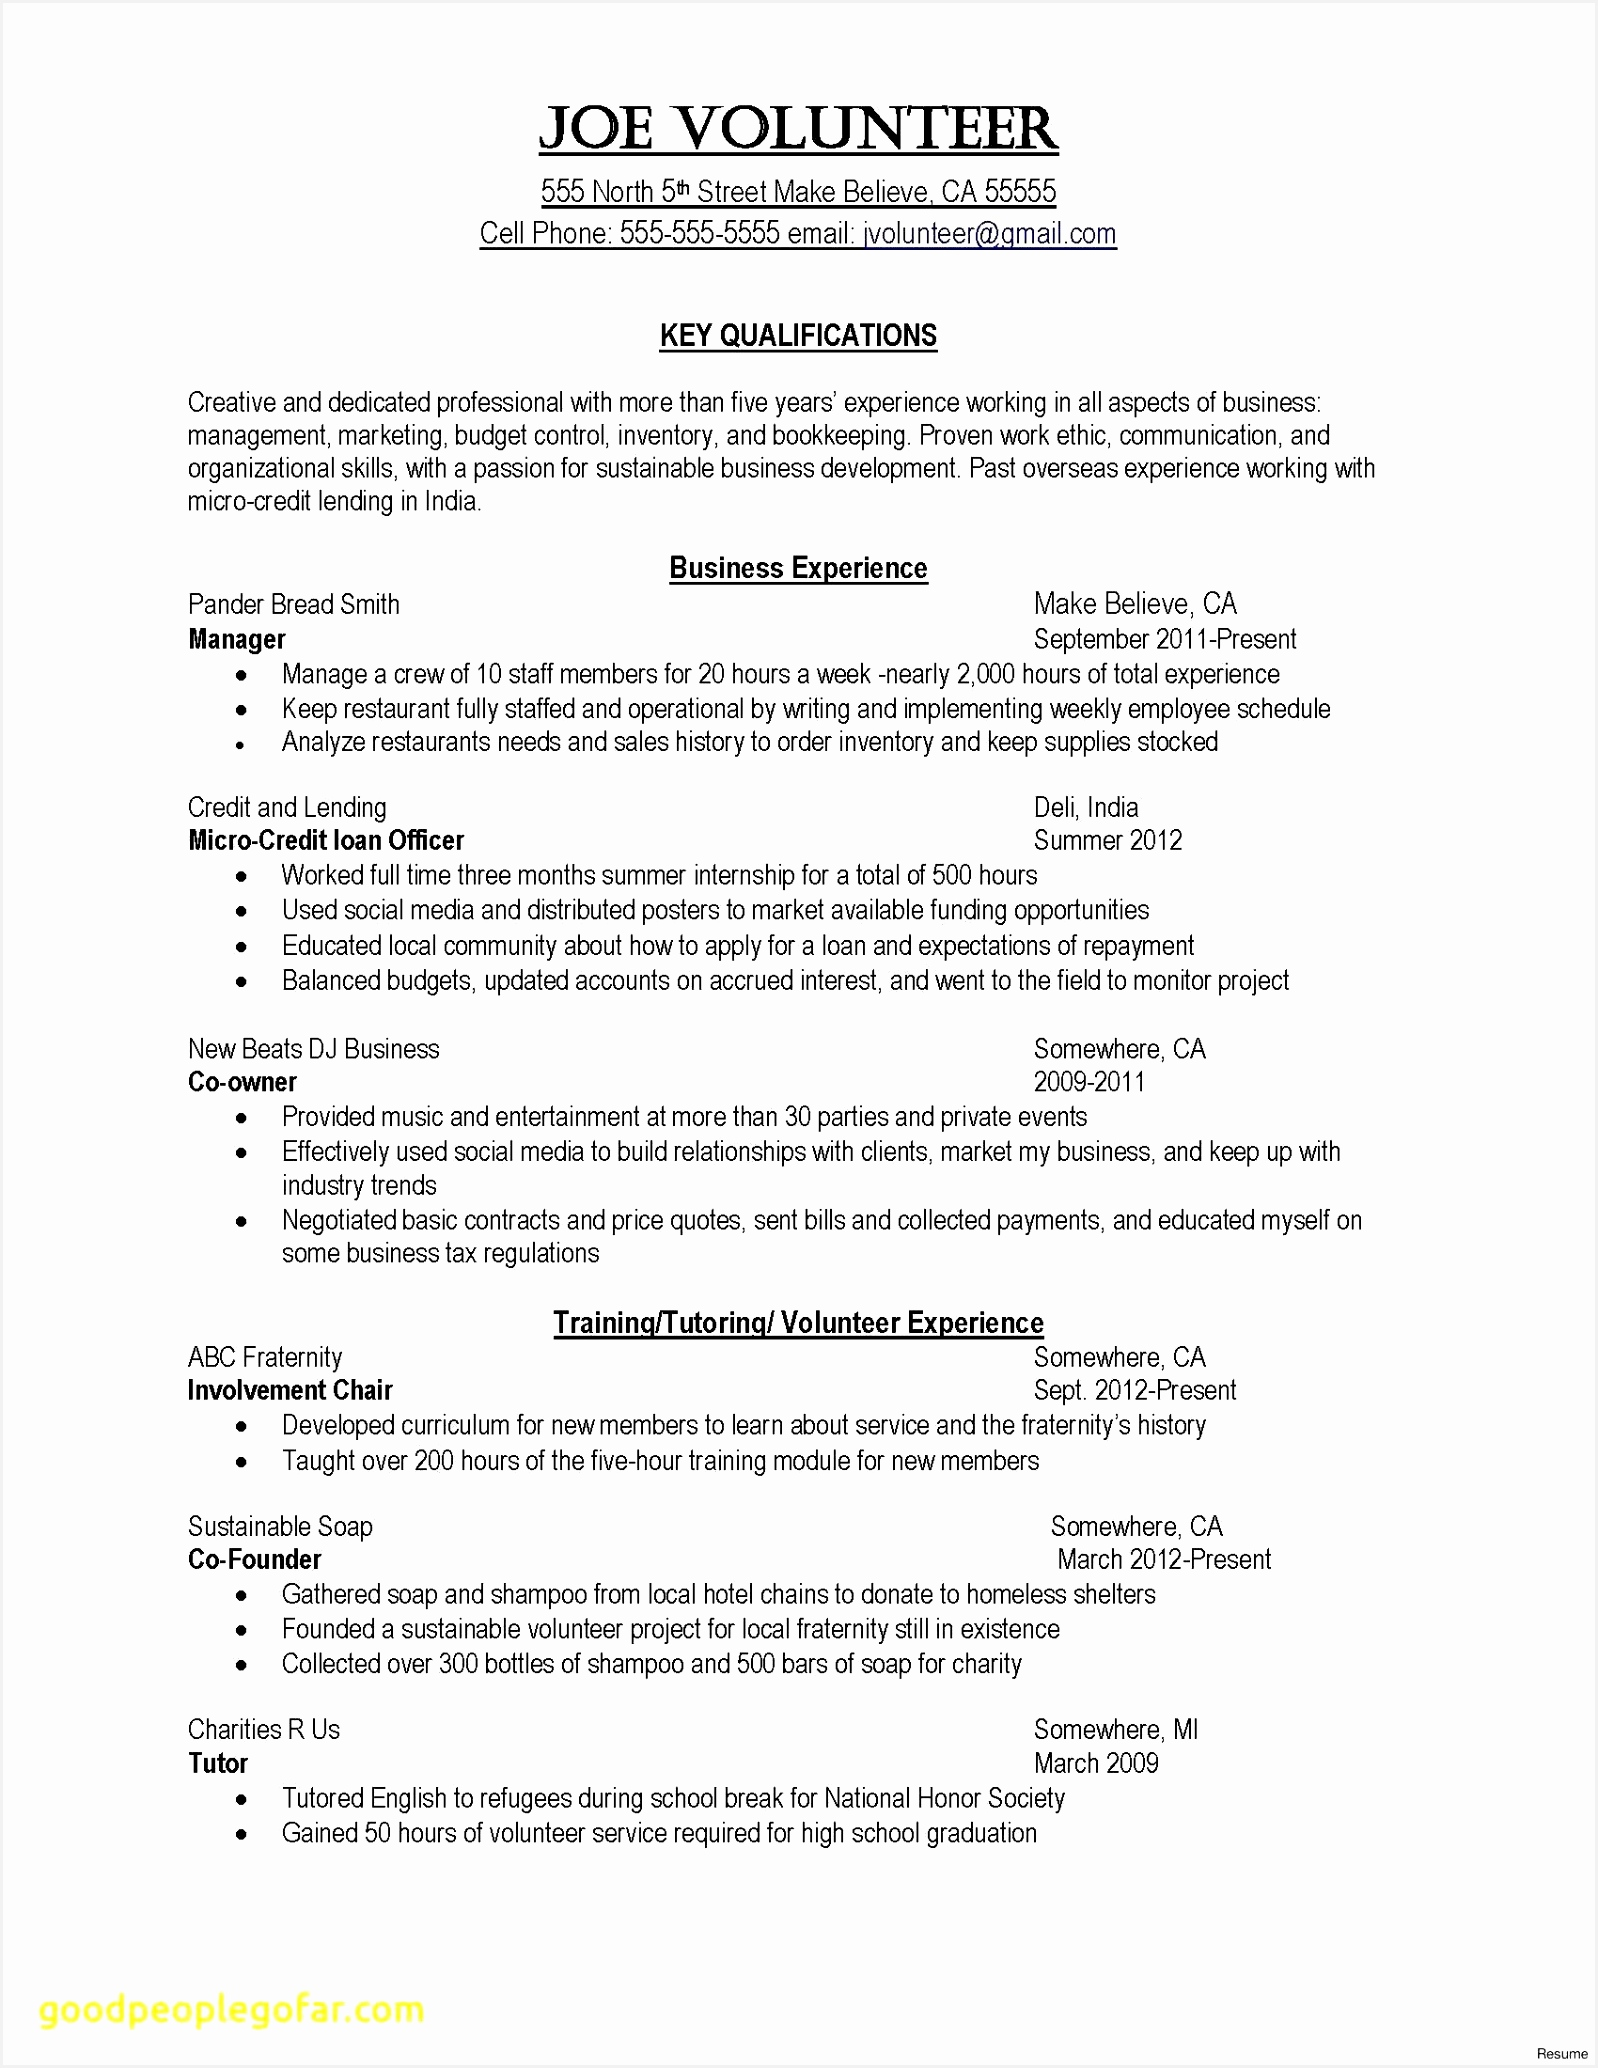 Creative Resume Objective Guafu Lovely 55 Resume Objective for University Application Of 10 Creative Resume Objective